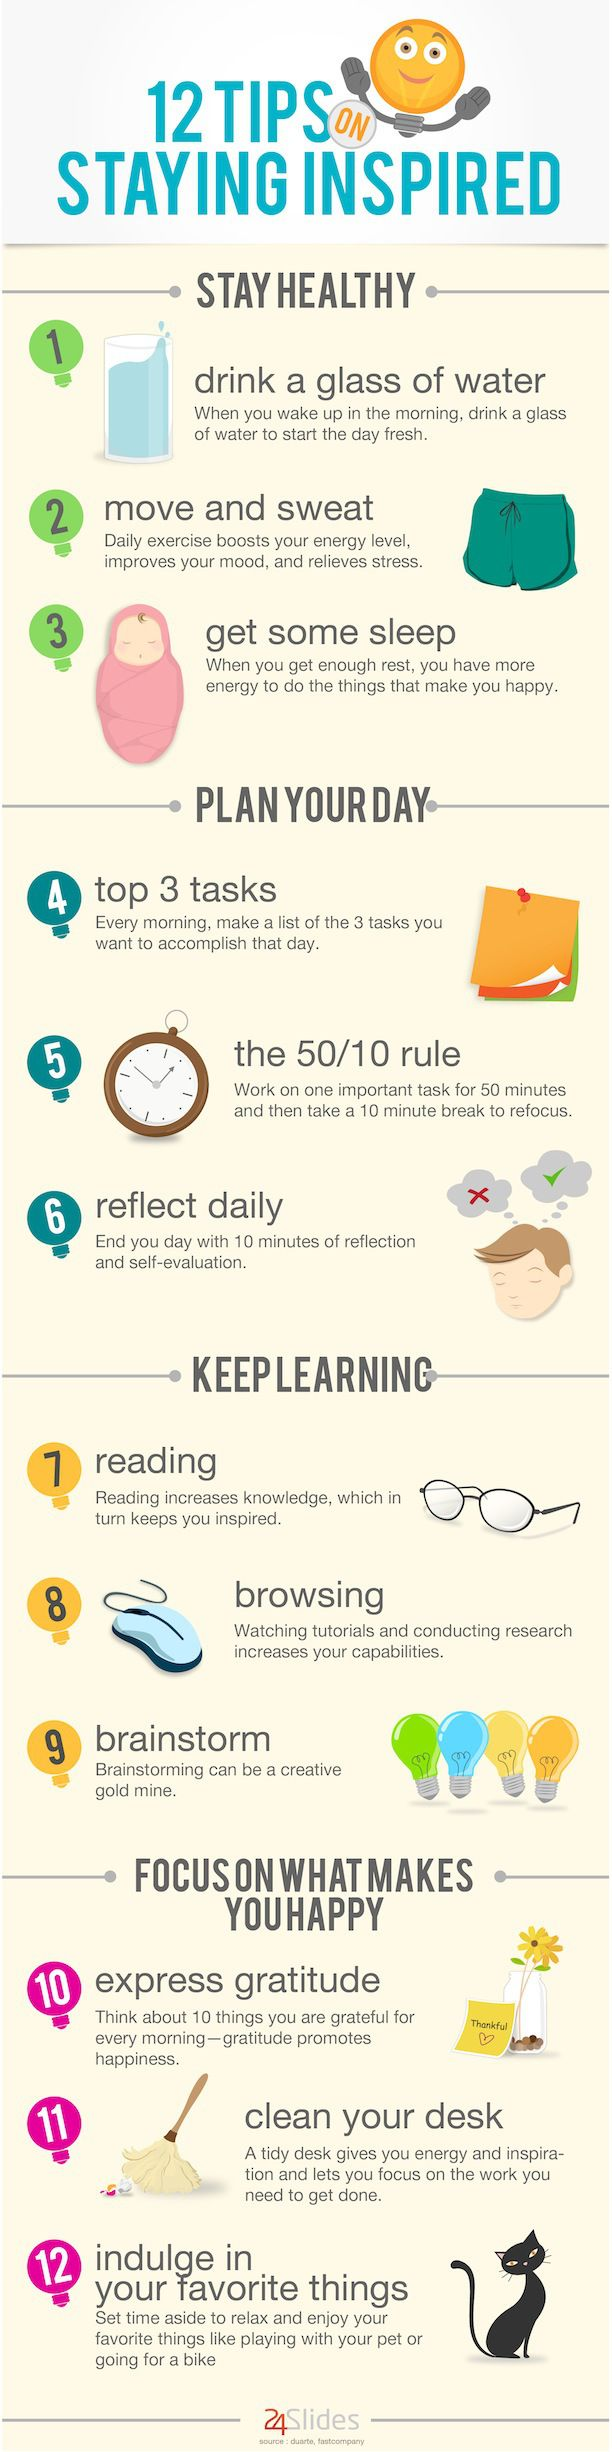 Lots of truth in these 12 Tips on Staying Inspired. Under meditation I would say: spending time in His presence; helps be to be also very creative and solving problems for the day #getyourpriotitiesright